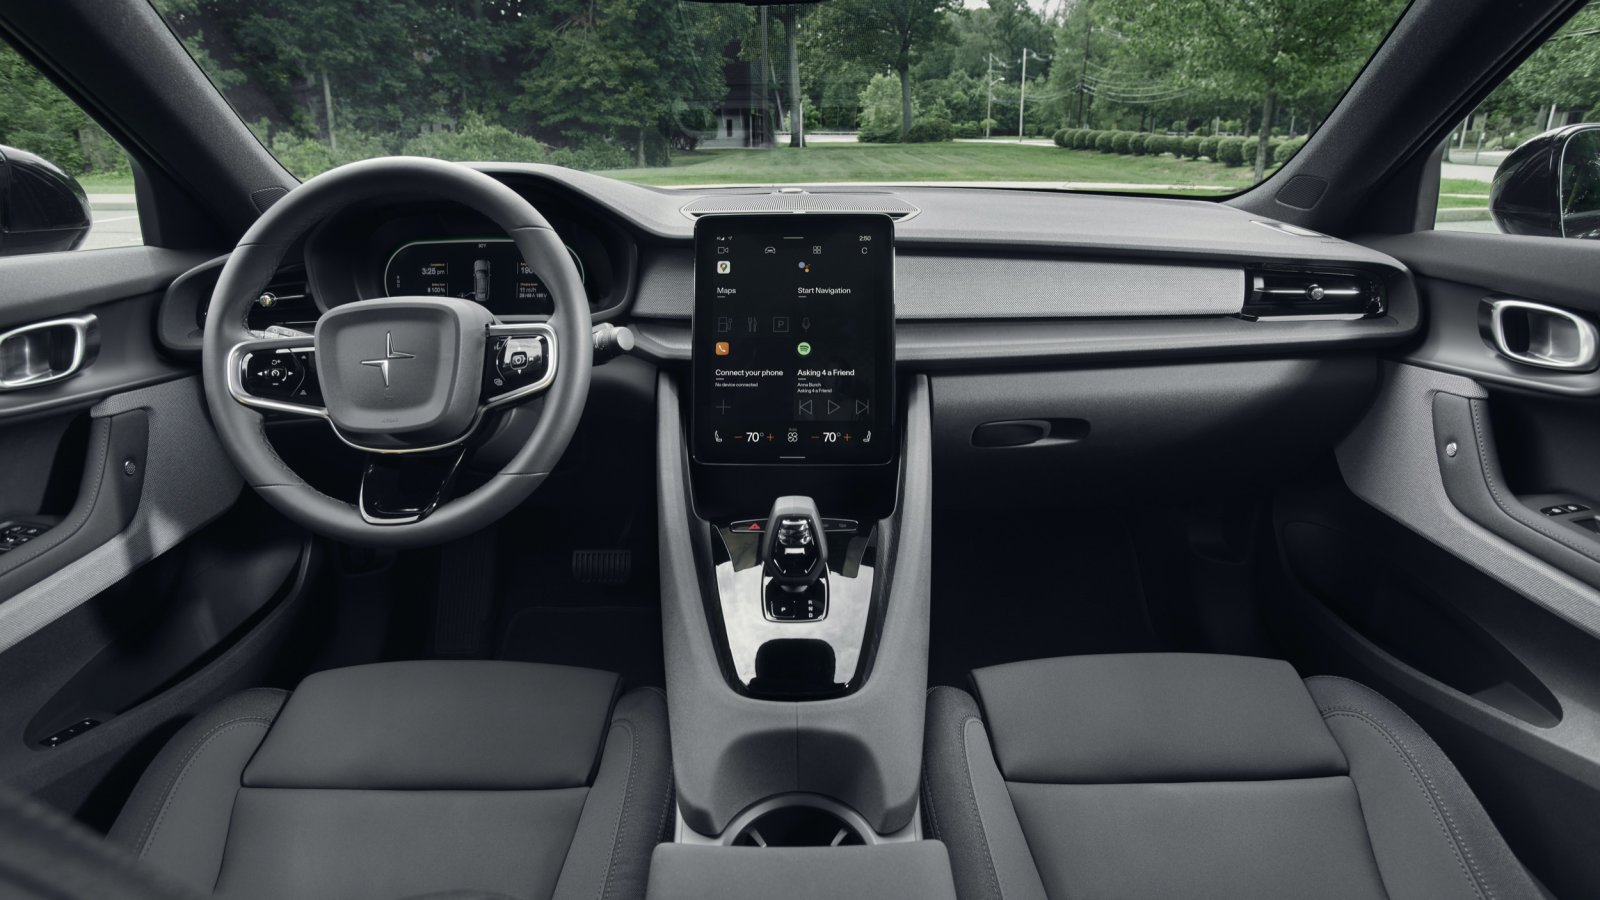 2020 Polestar 2 First Drive|Impacts, specifications, images